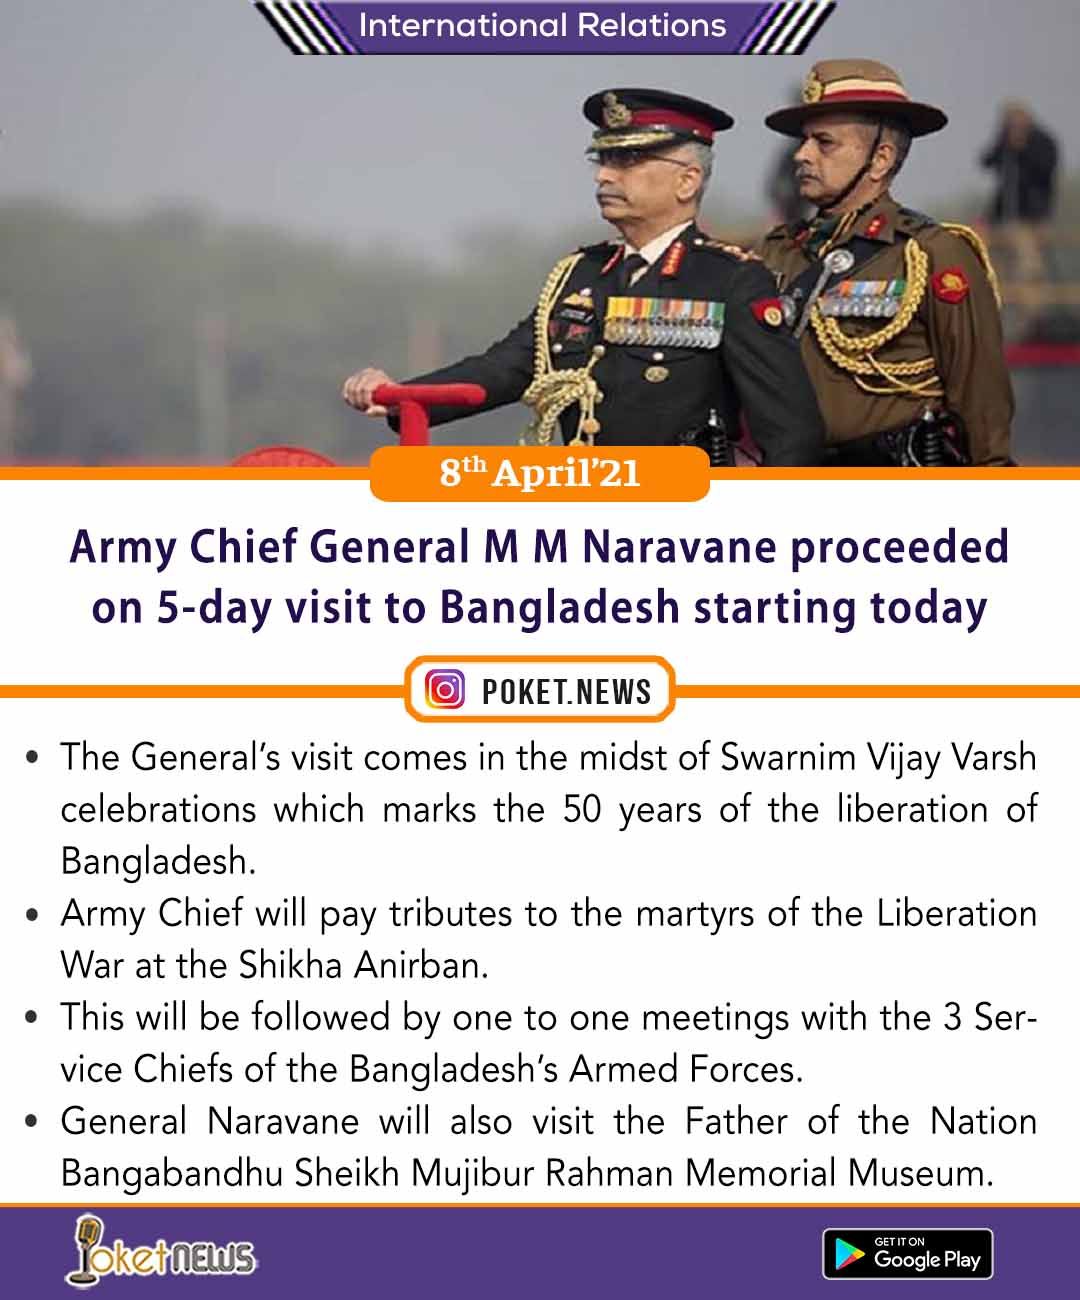 Army Chief General M M Naravane proceeded on 5-day visit to Bangladesh starting today